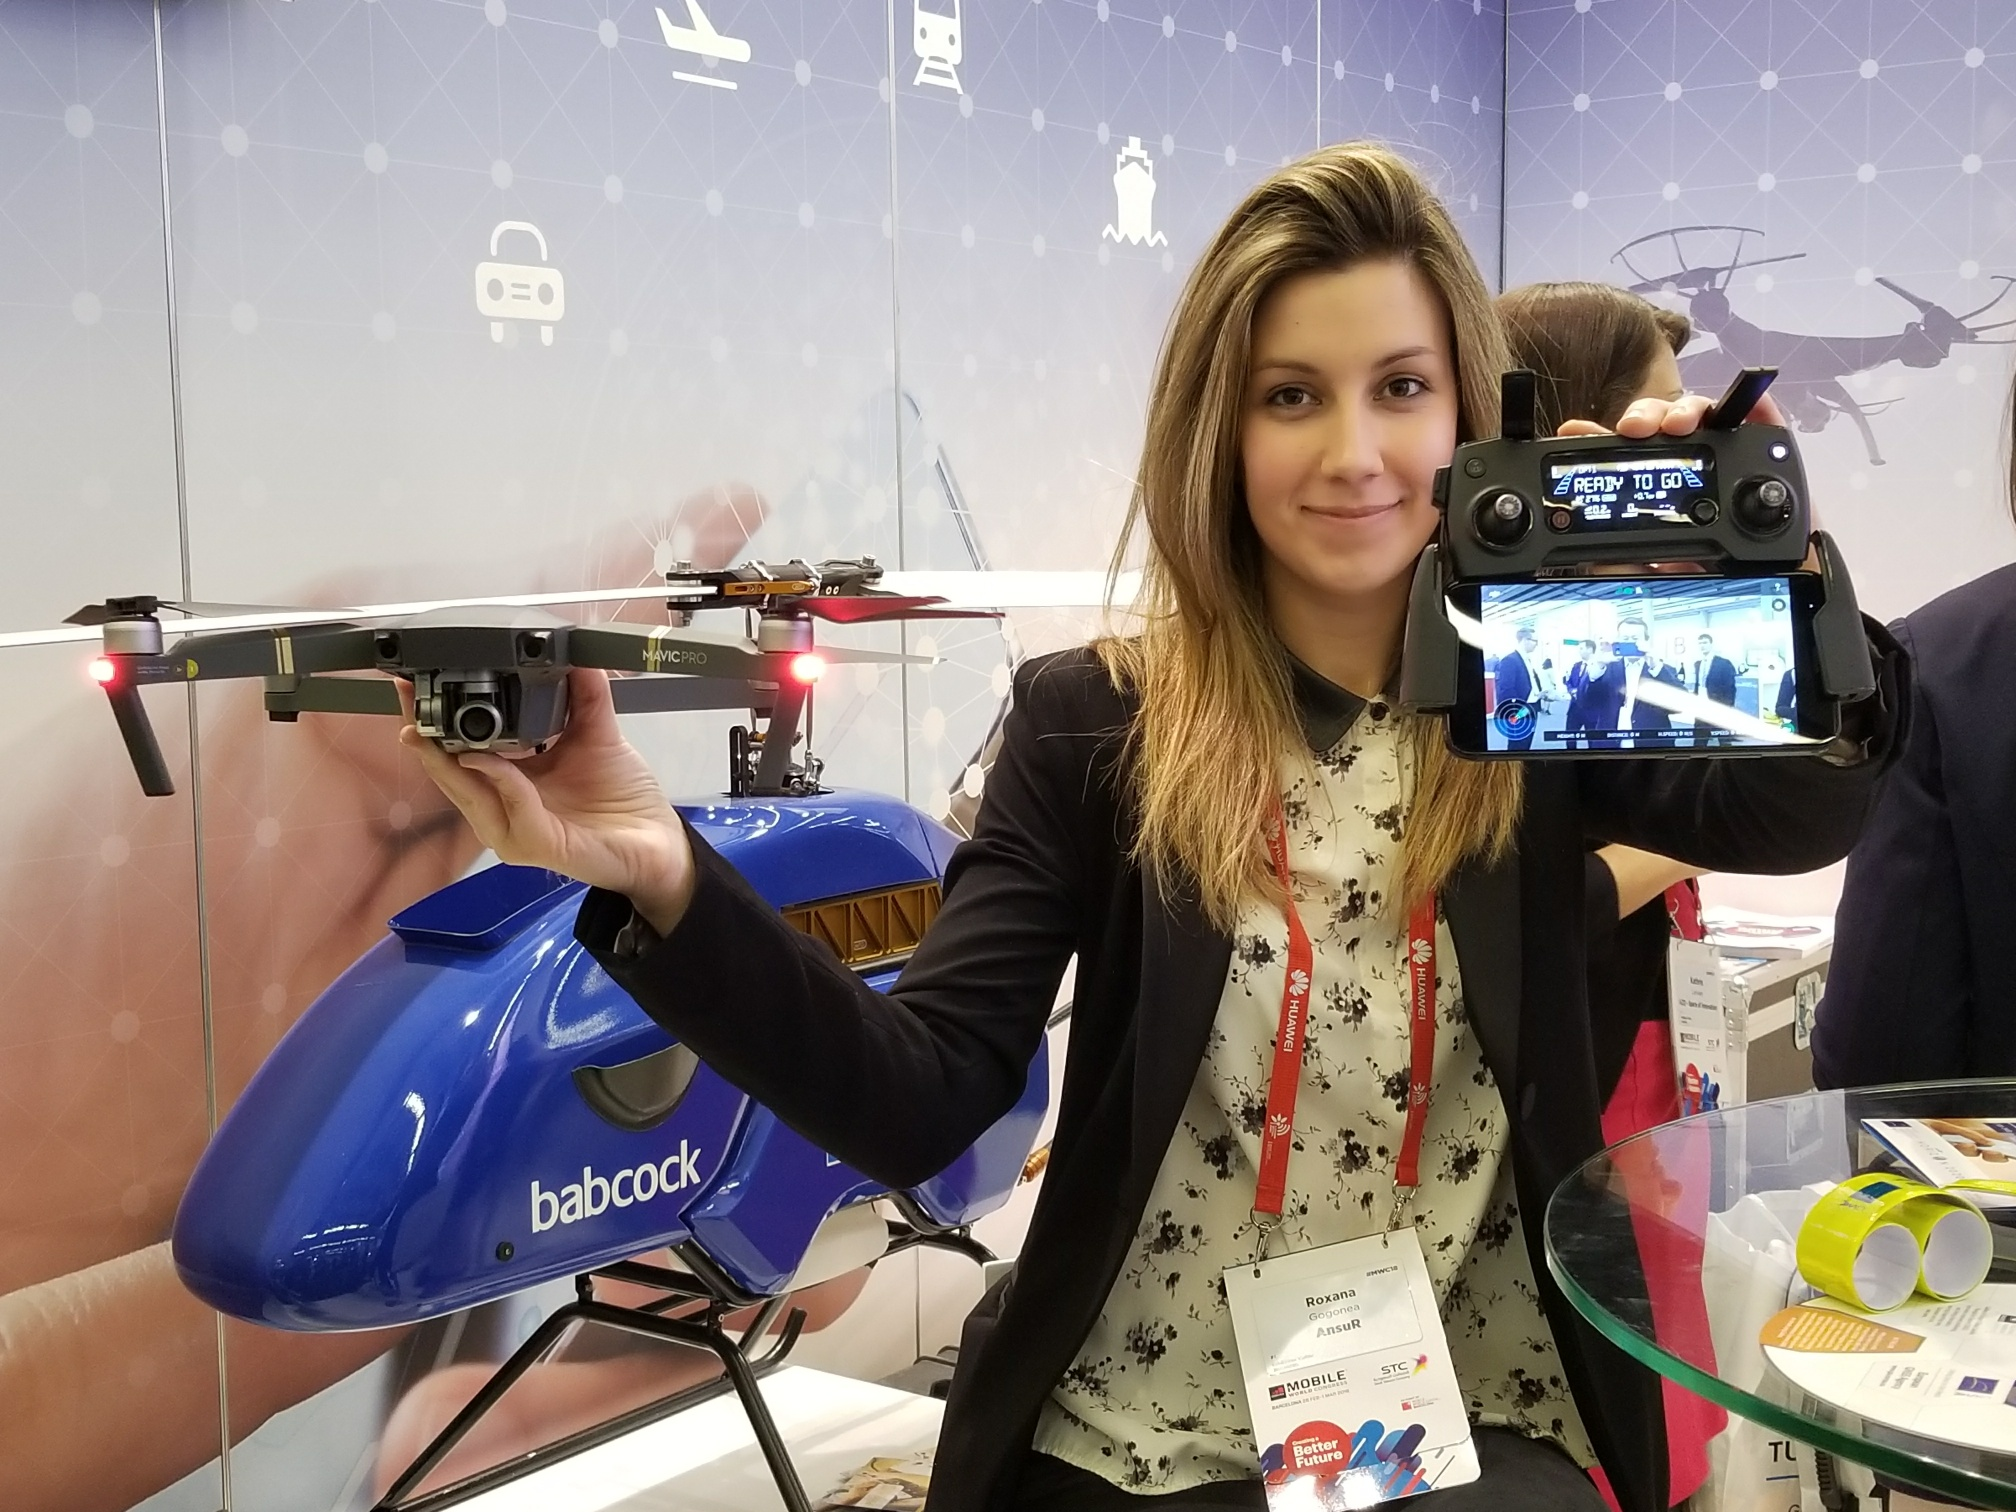 MWC Features Drones, Autonomous Vehicles and Location